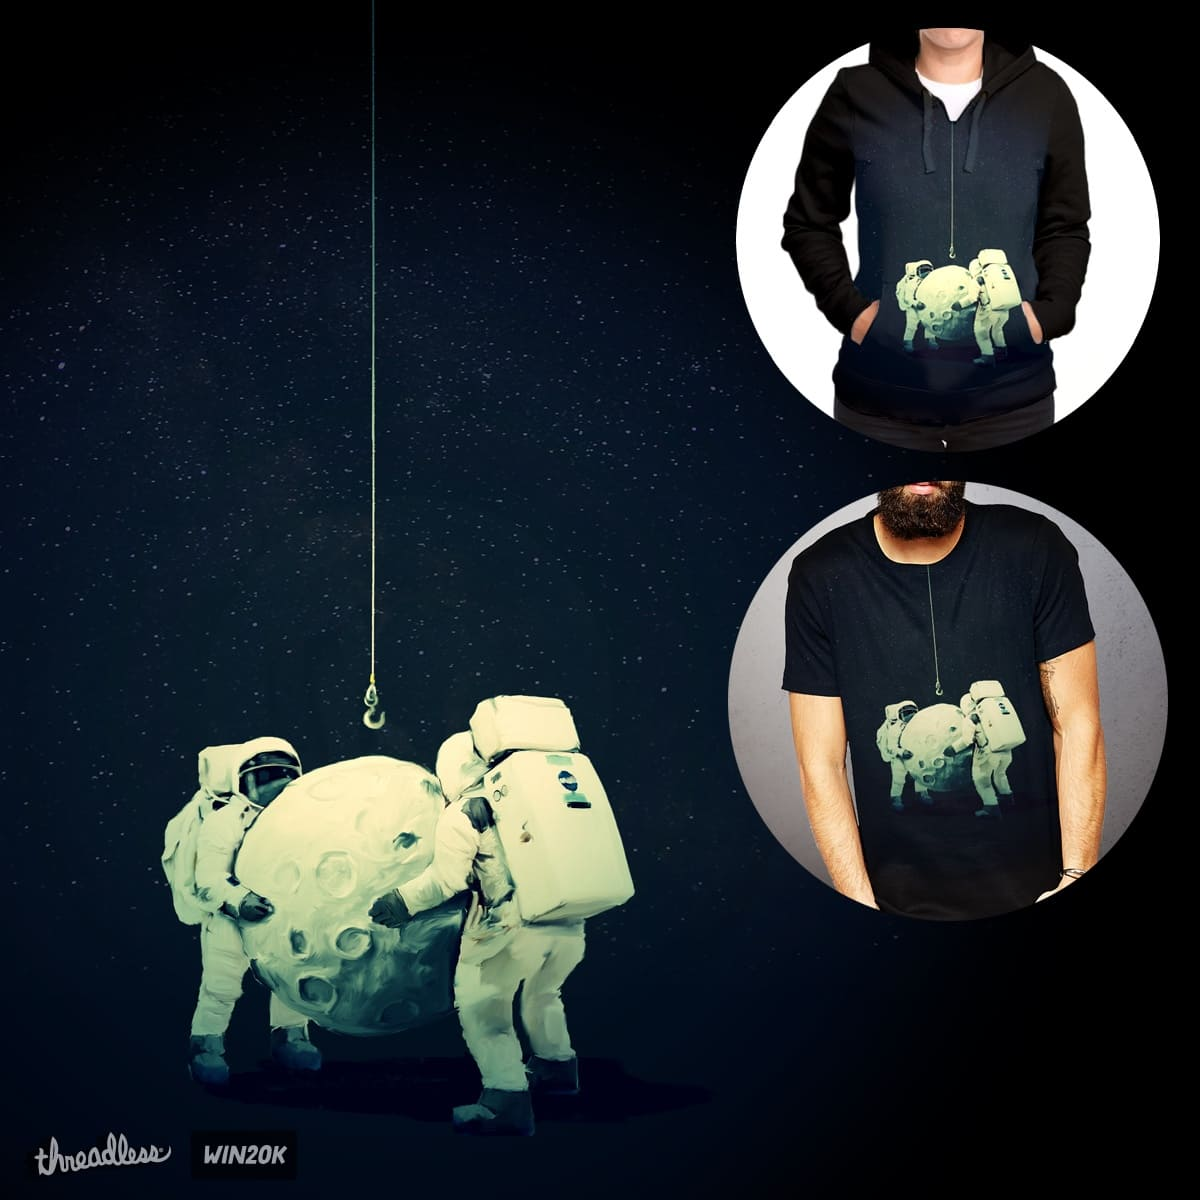 Hanging the moon by levman on Threadless